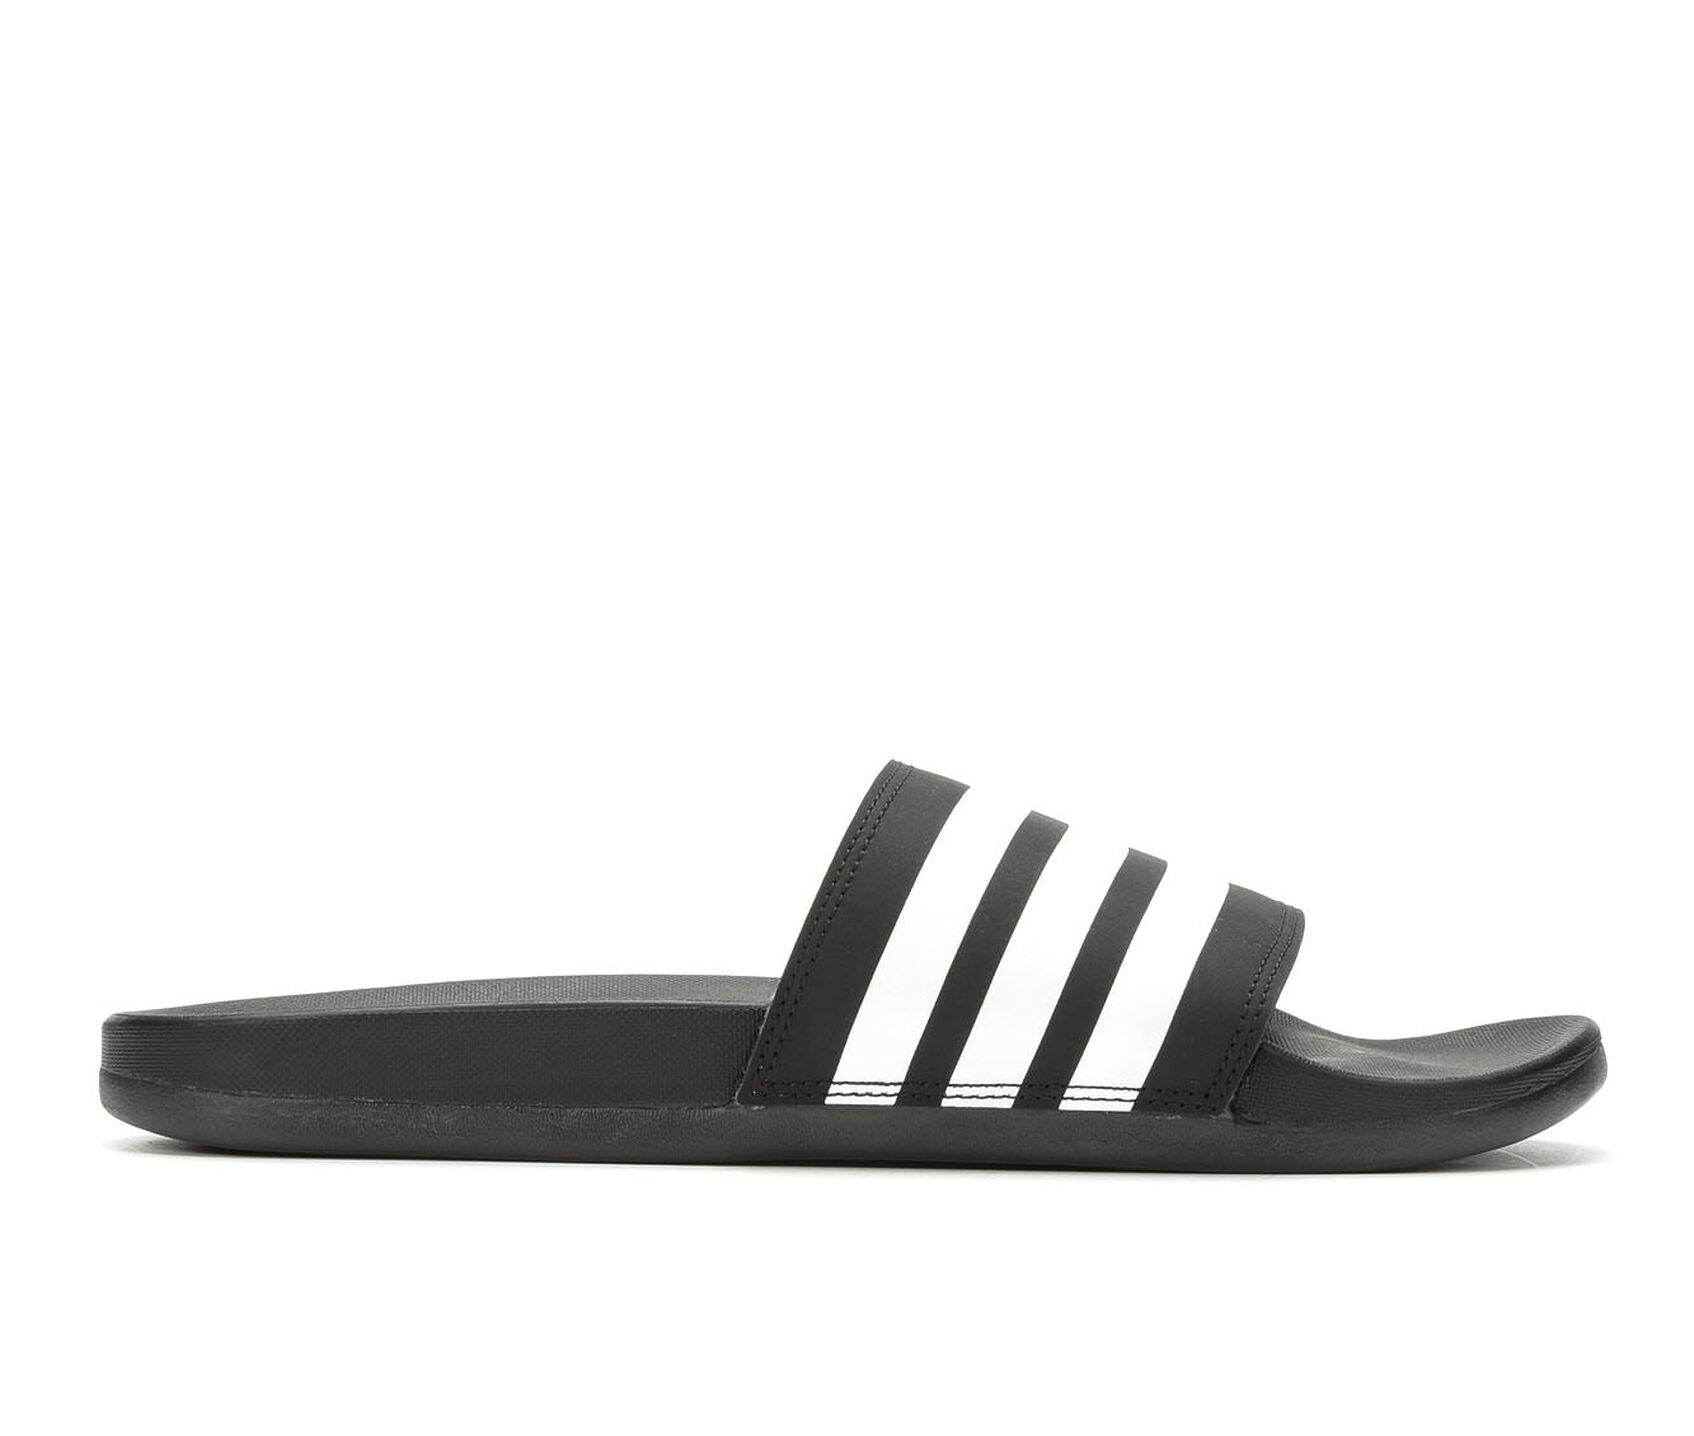 b19a271c7c36 ... Adidas Adilette Cloudfoam Plus Sport Slides. Previous